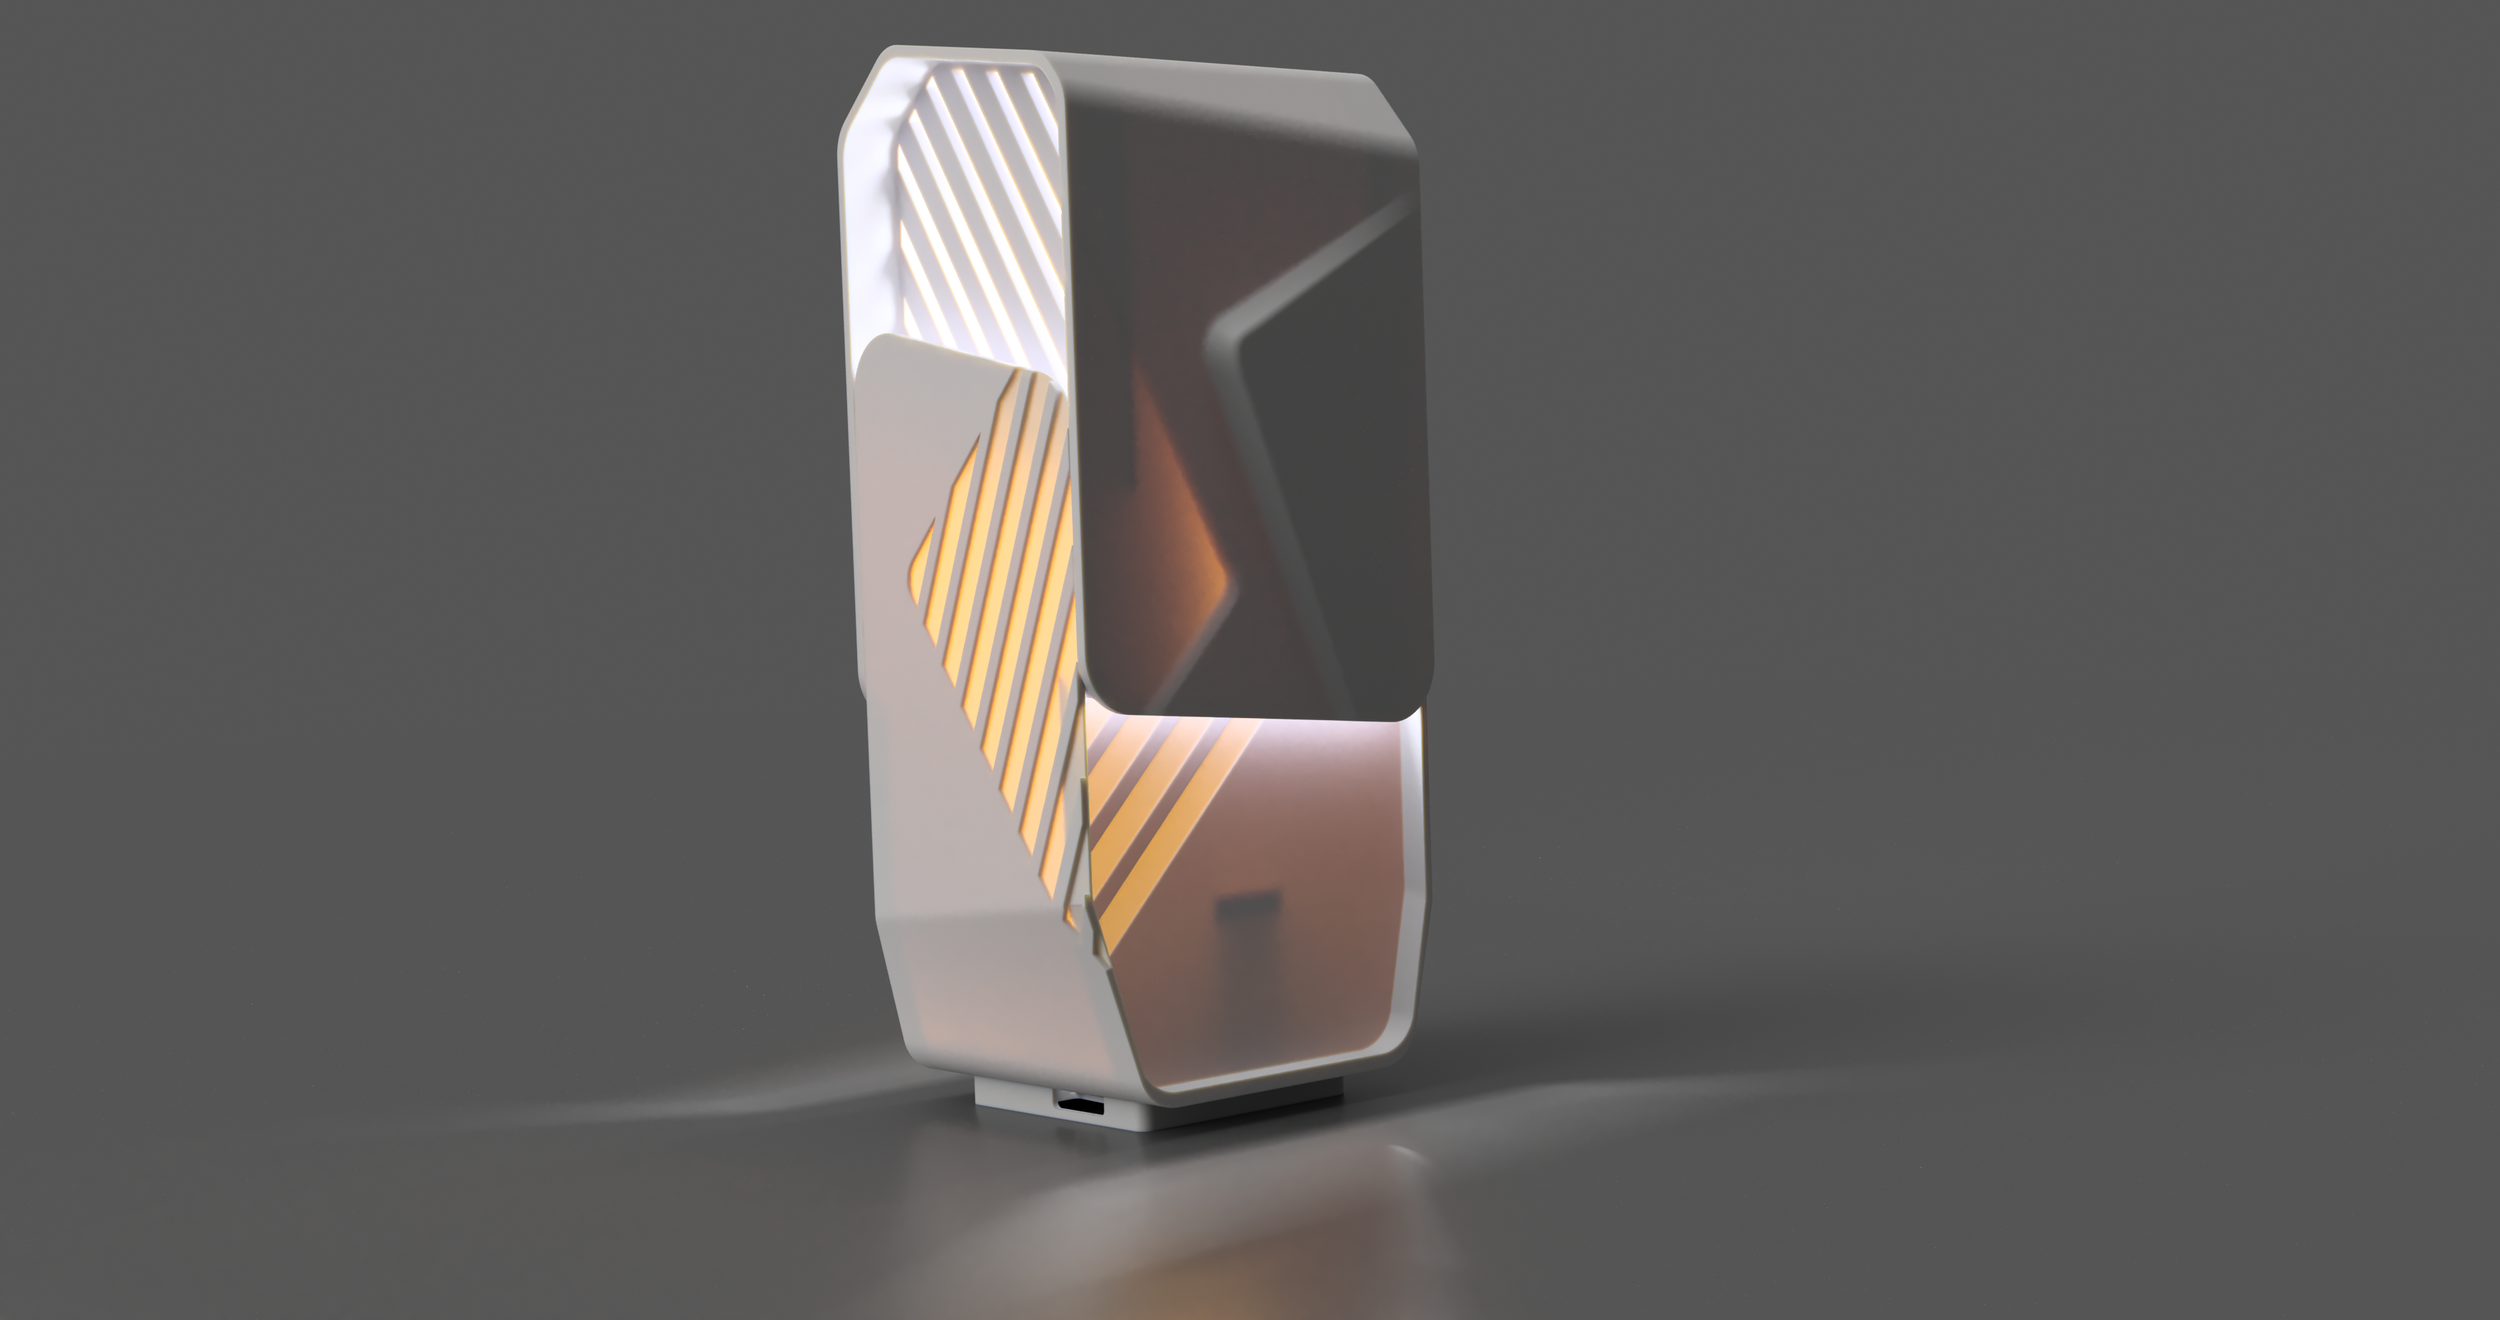 motion_lamp_2018-Mar-20_06-43-48AM-000_CustomizedView16208136592_png.png